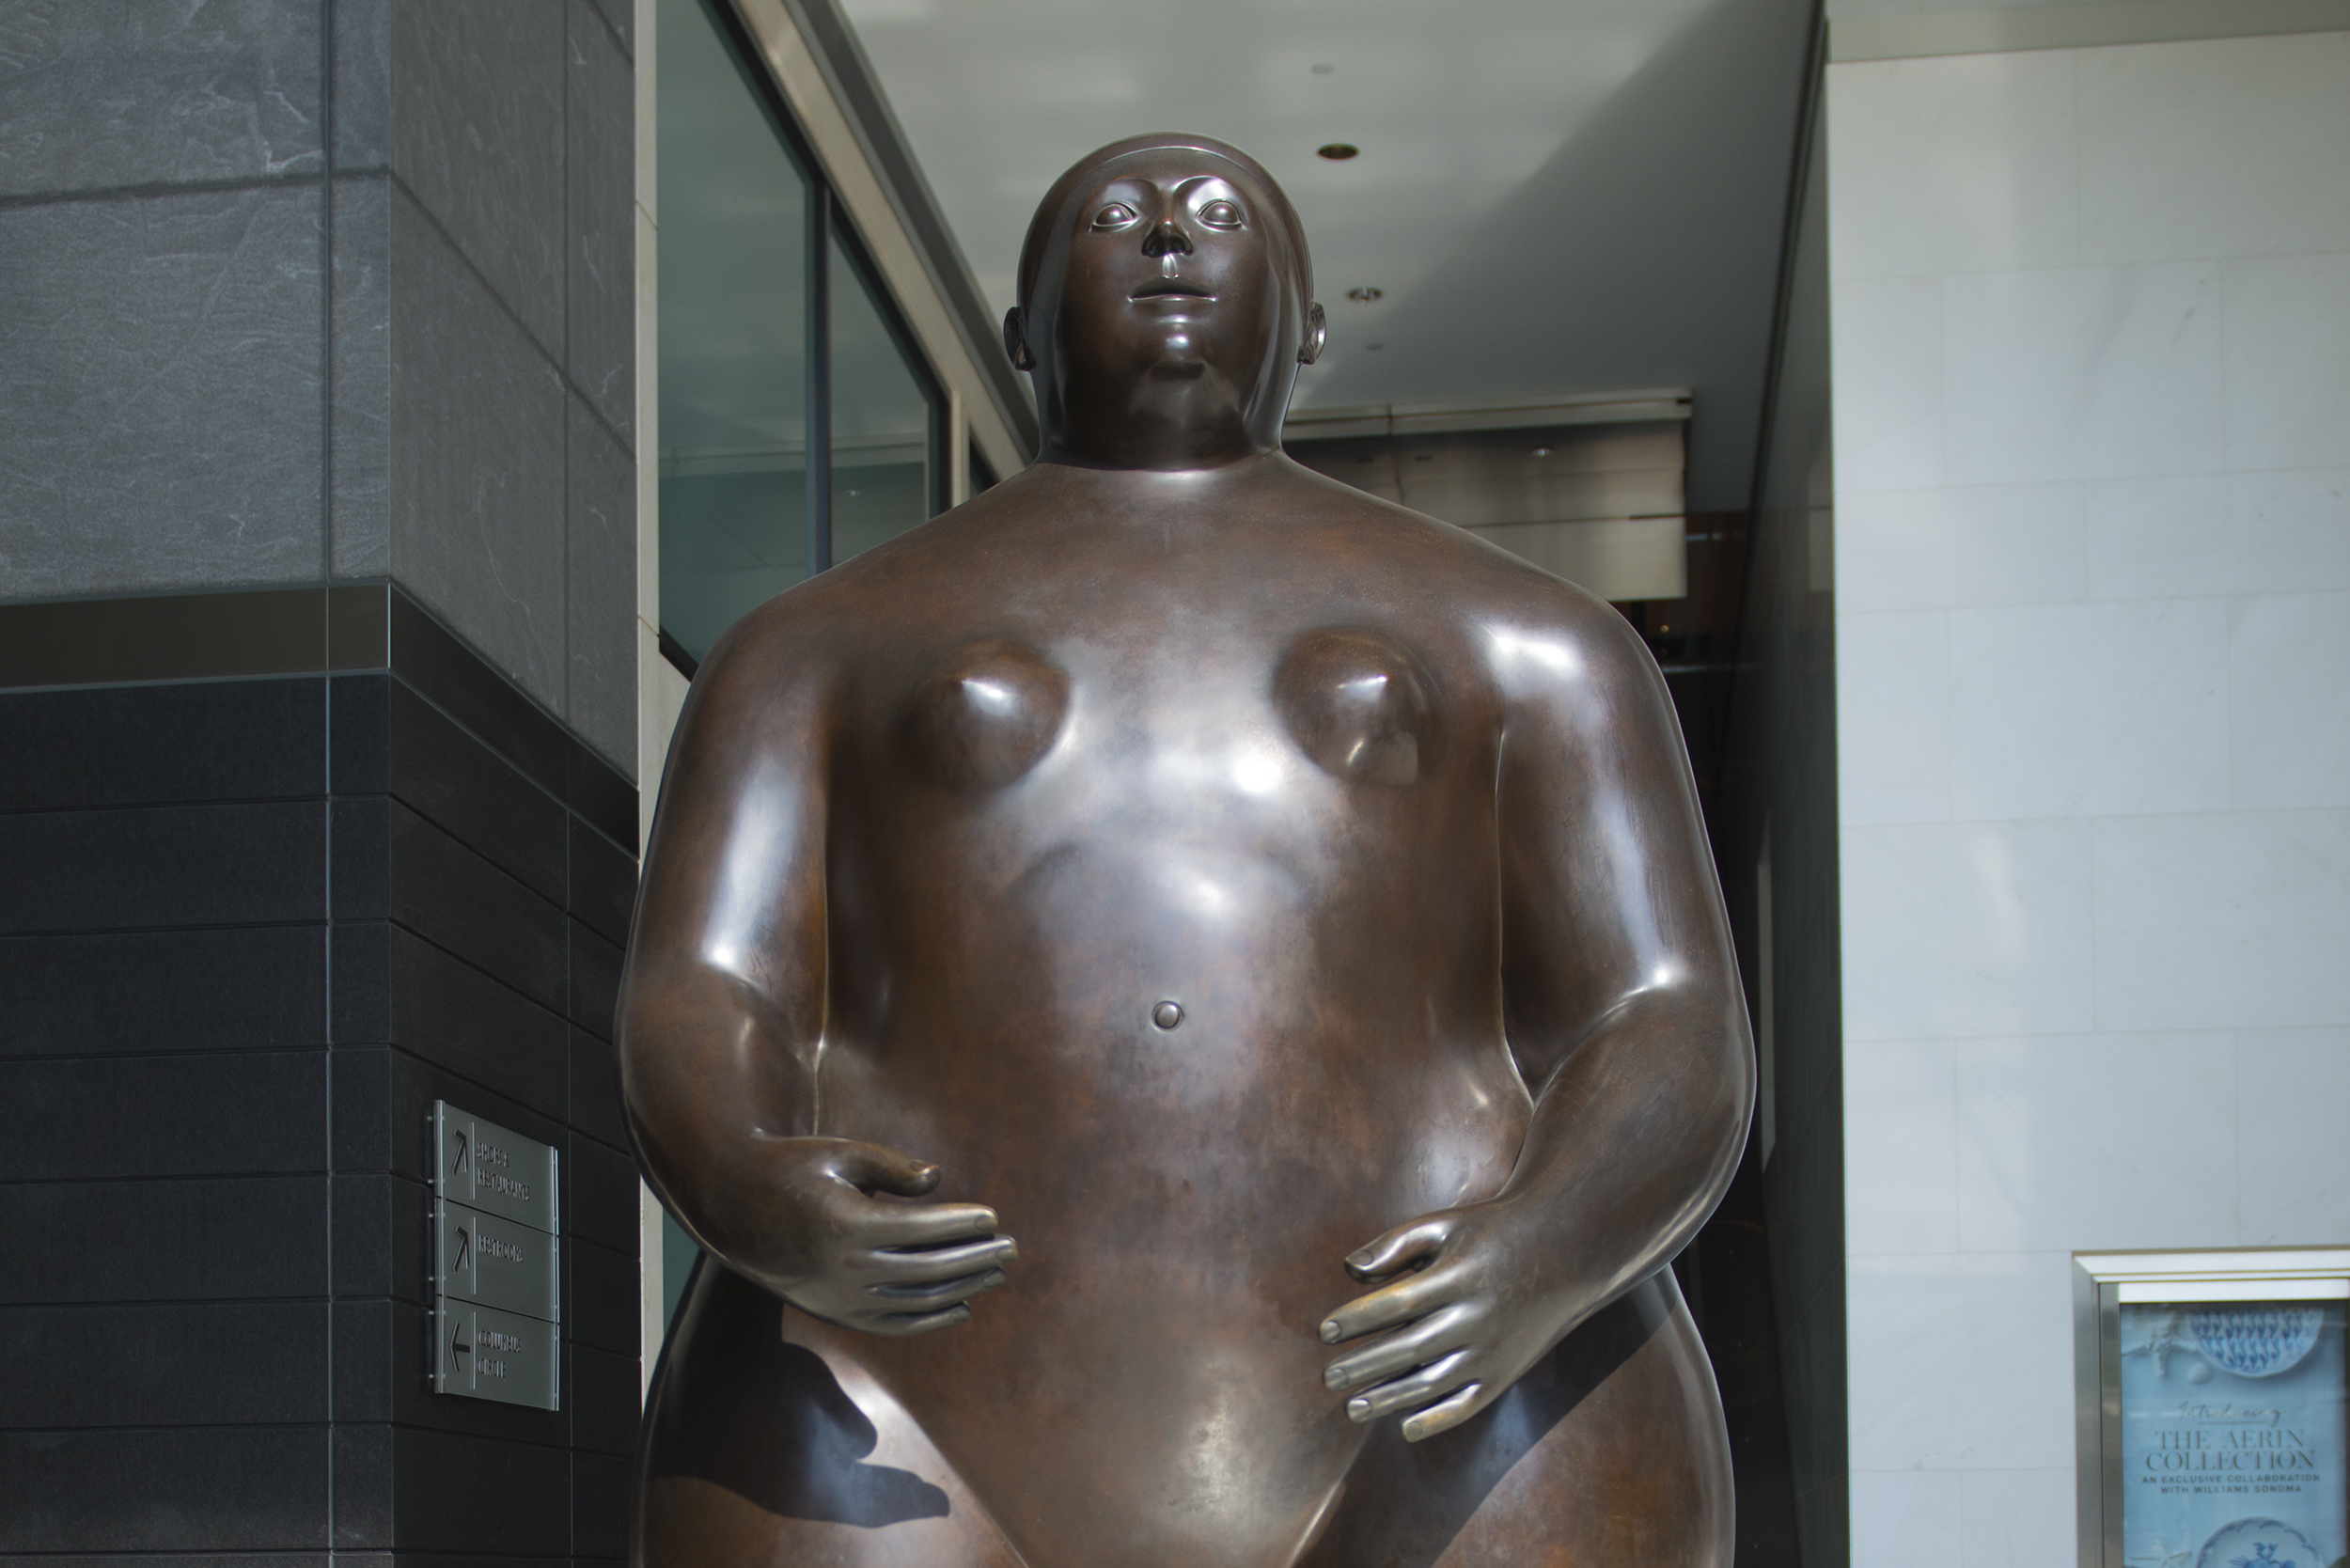 Obese statue at Time Warner Center